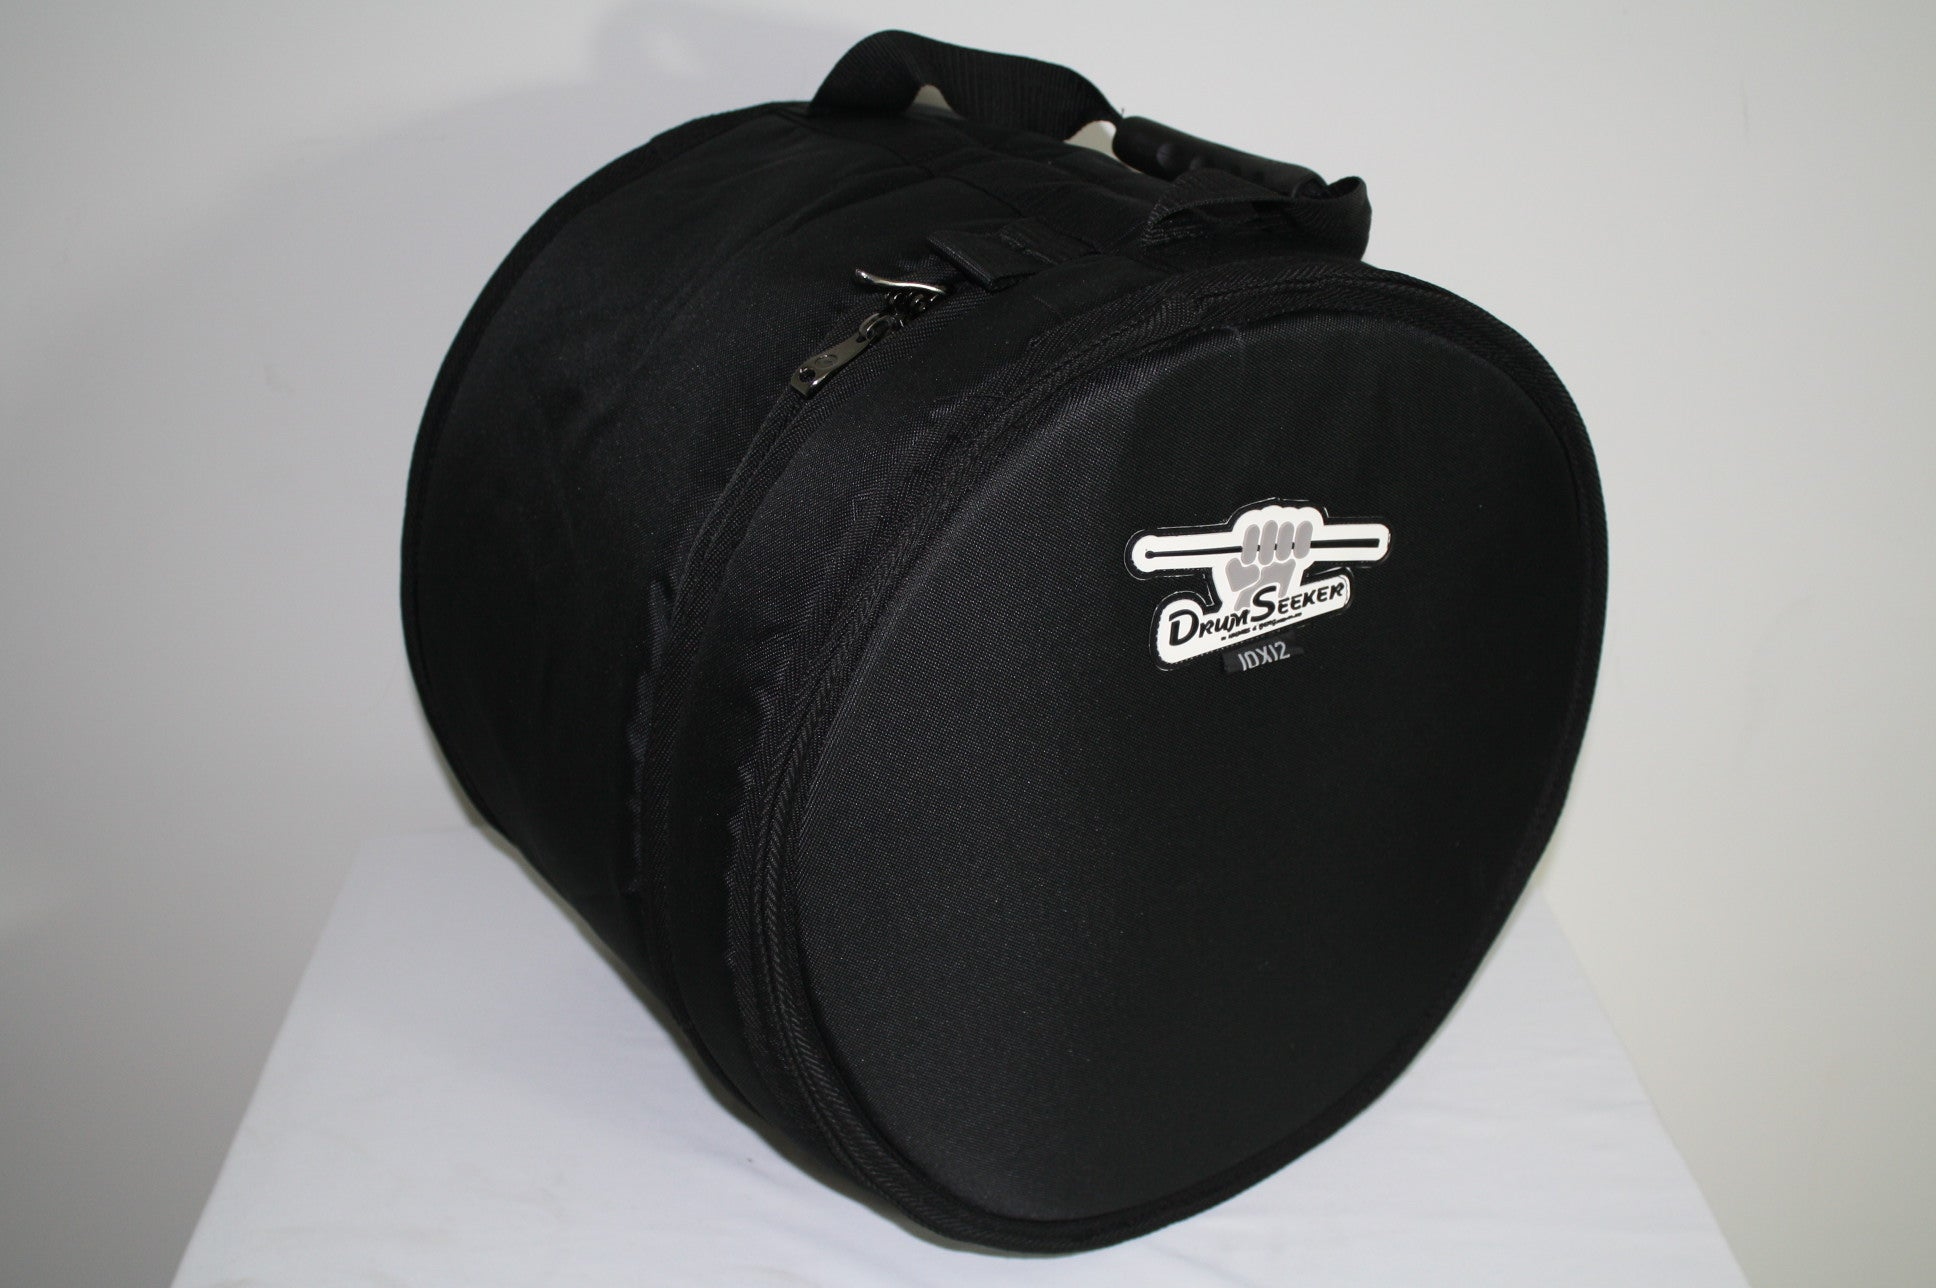 H&B  Drum Seeker 9 x 12 Inches Tom Drum Bag